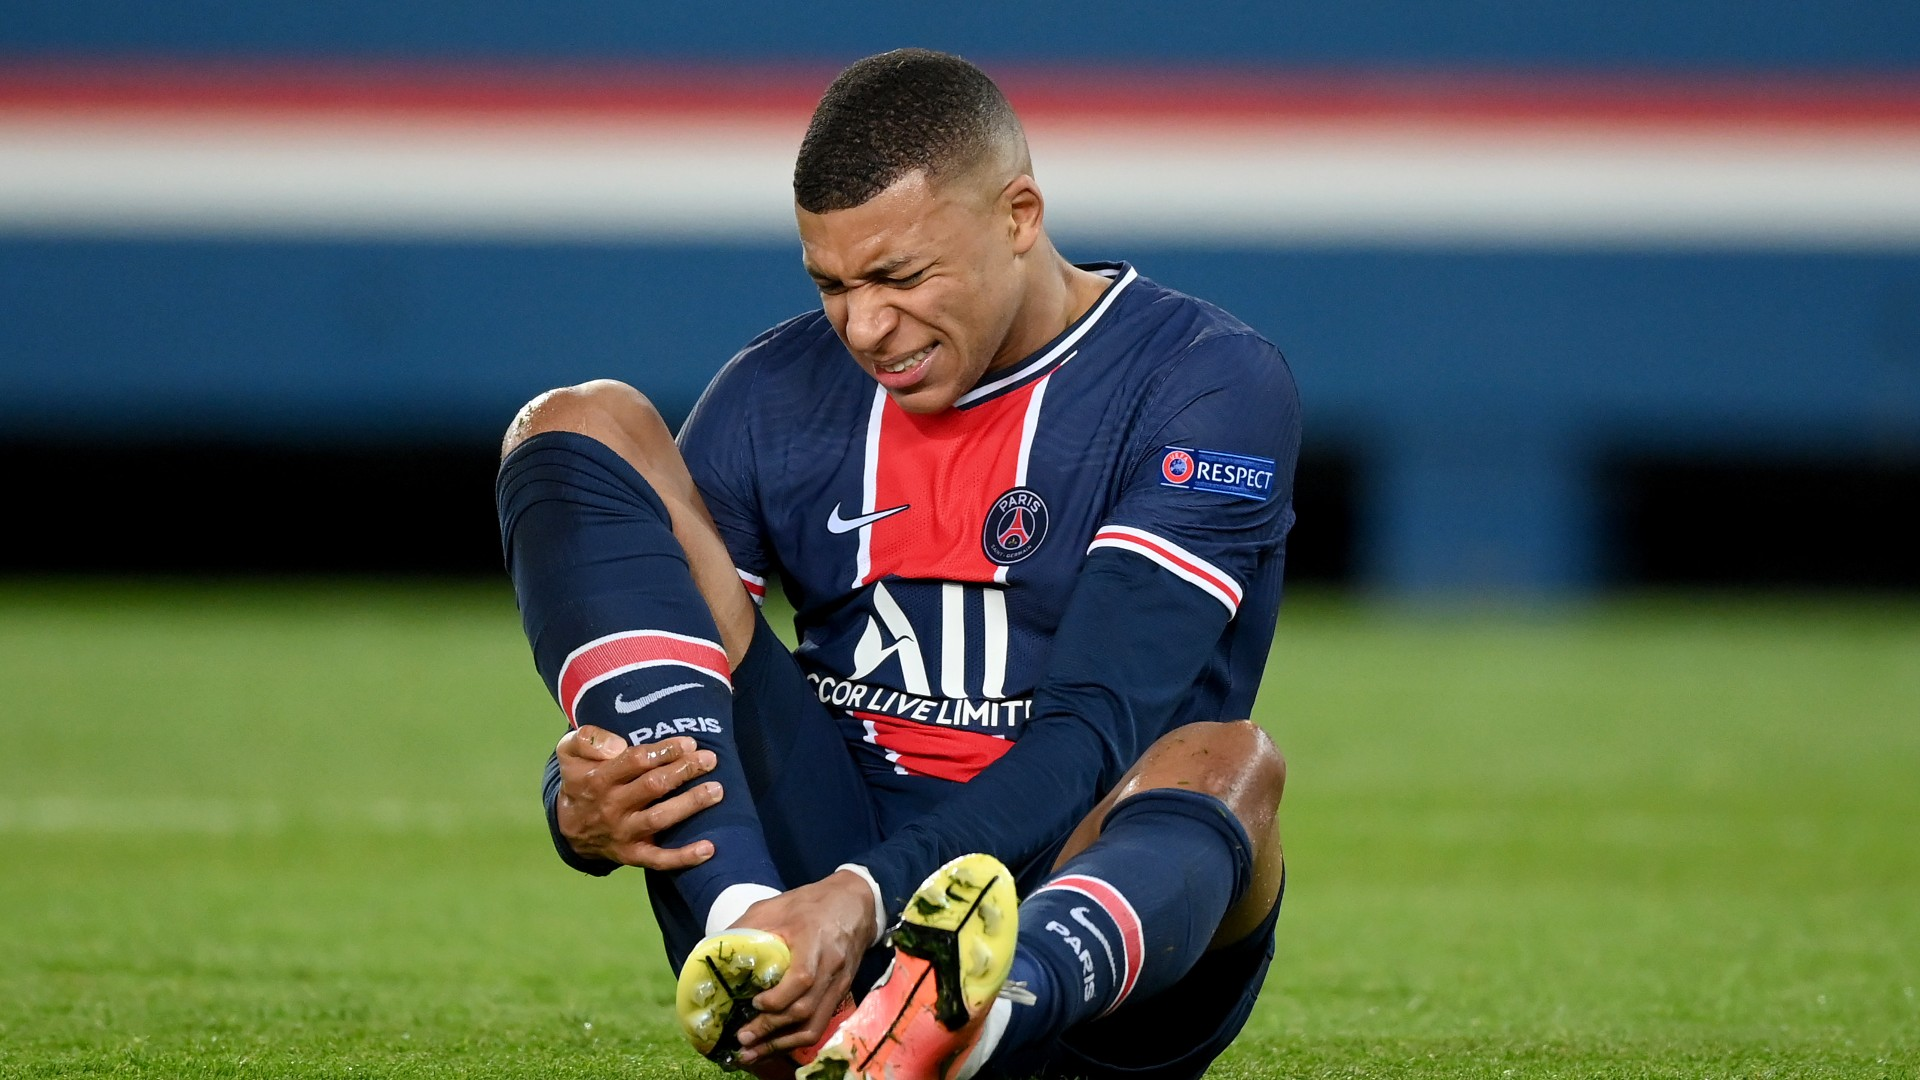 'We think he will be there' – Mbappe, Pochettino's optimistic PSG star, will be fit to face Manchester City